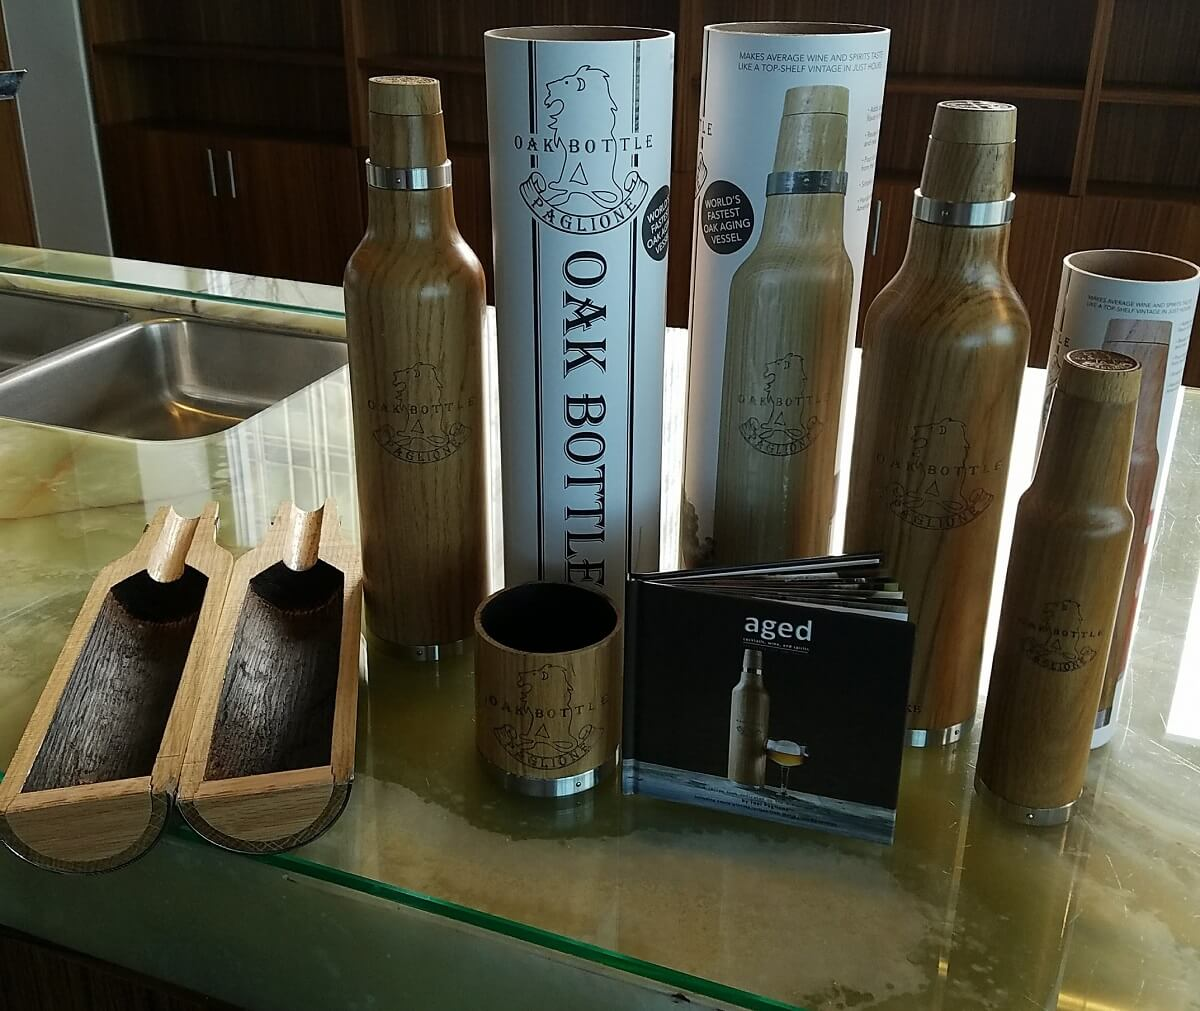 the Oak Bottle product line